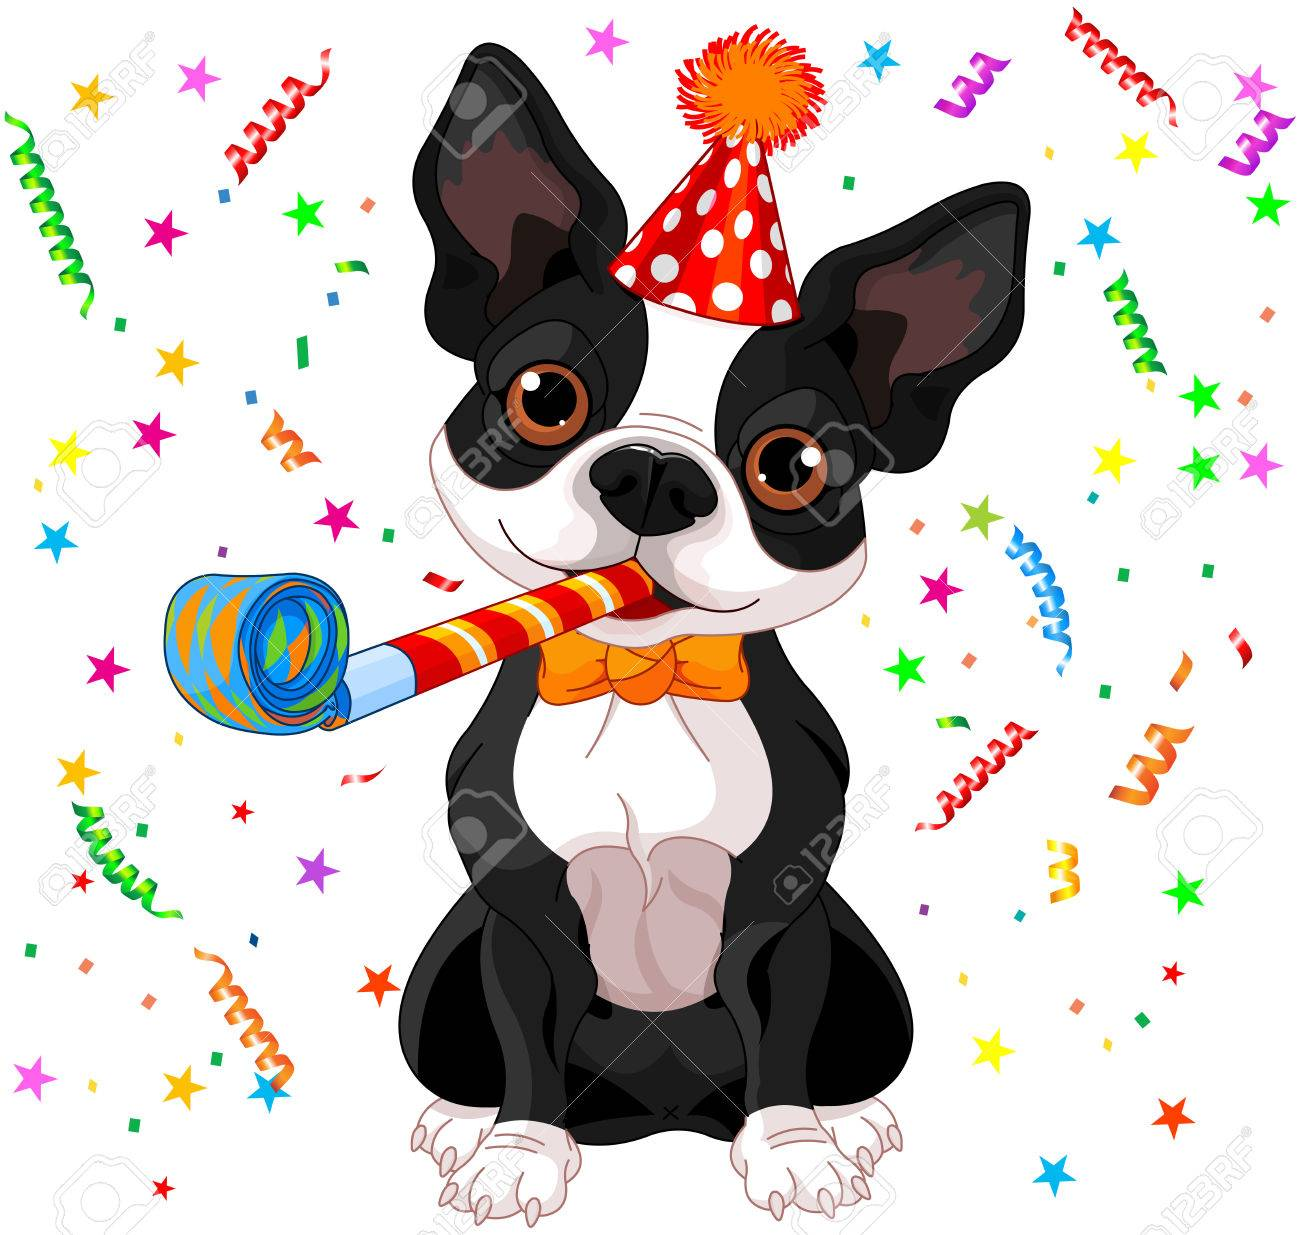 Le ring 35588778-illustration-of-cute-boston-terrier-celebrating